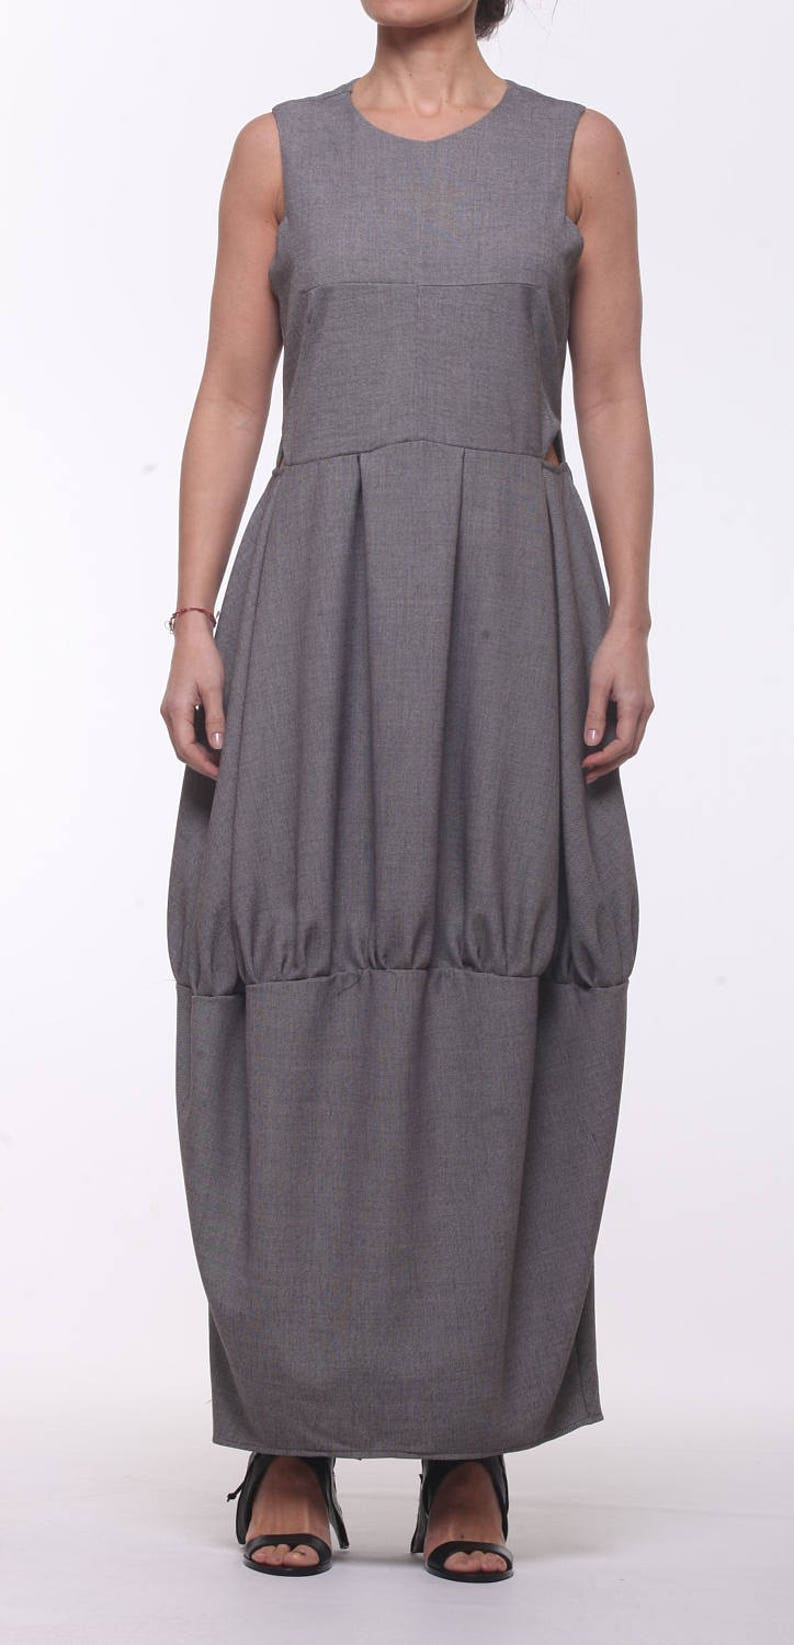 5409dfa9898c3 Gray Stylish Dress   Paradox   Wiggle Dress   Sleeveless Dress